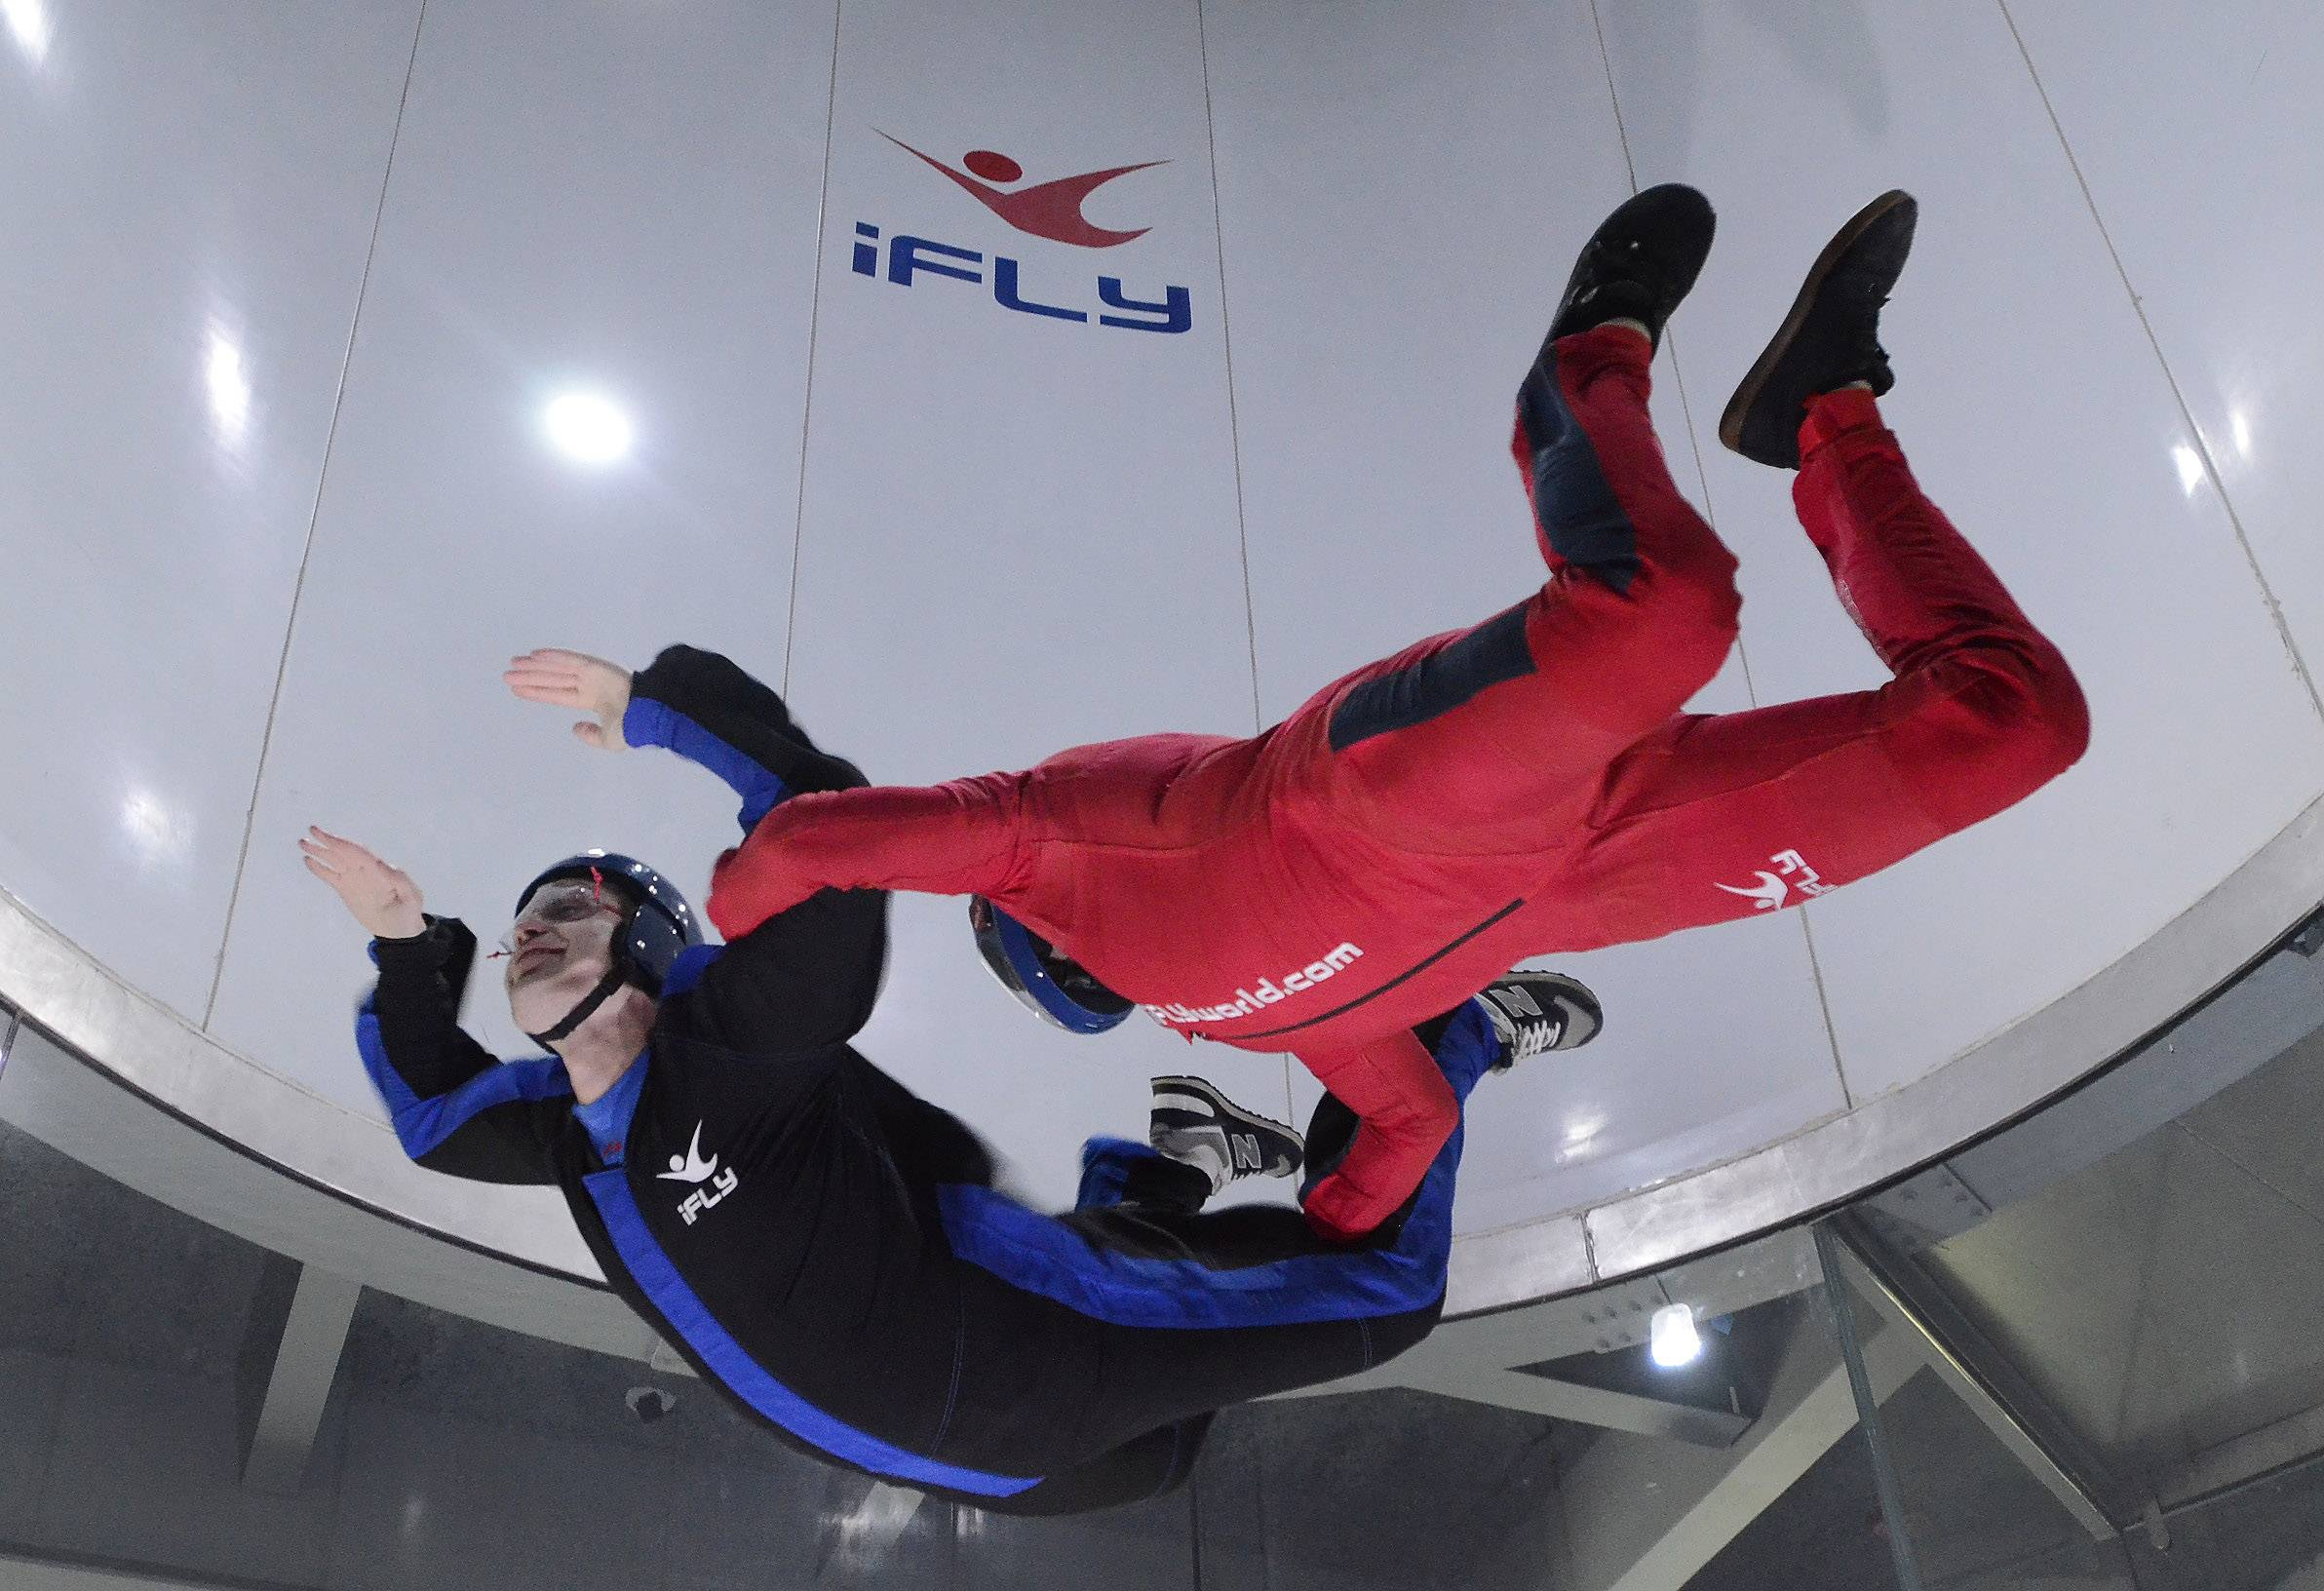 What it's like to sky dive indoors in Rosemont